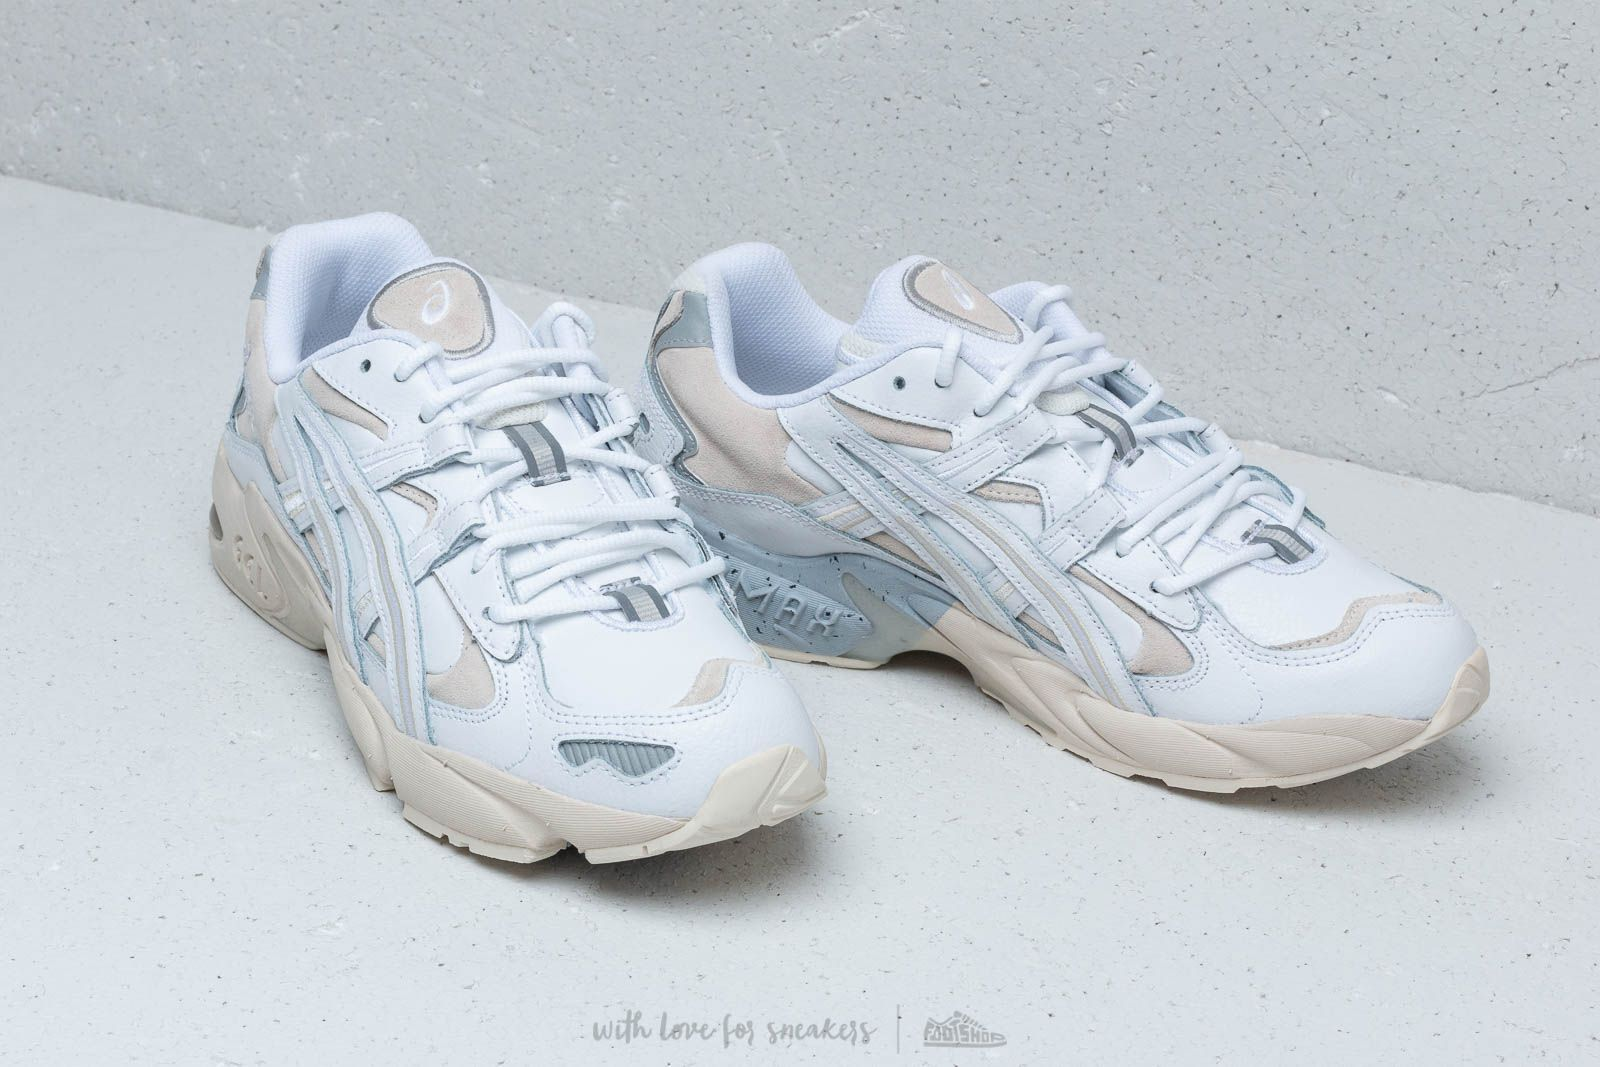 sale retailer 6438c 29799 Asics Gel-Kayano 5 OG White/ White | CHAUSSURES in 2019 ...